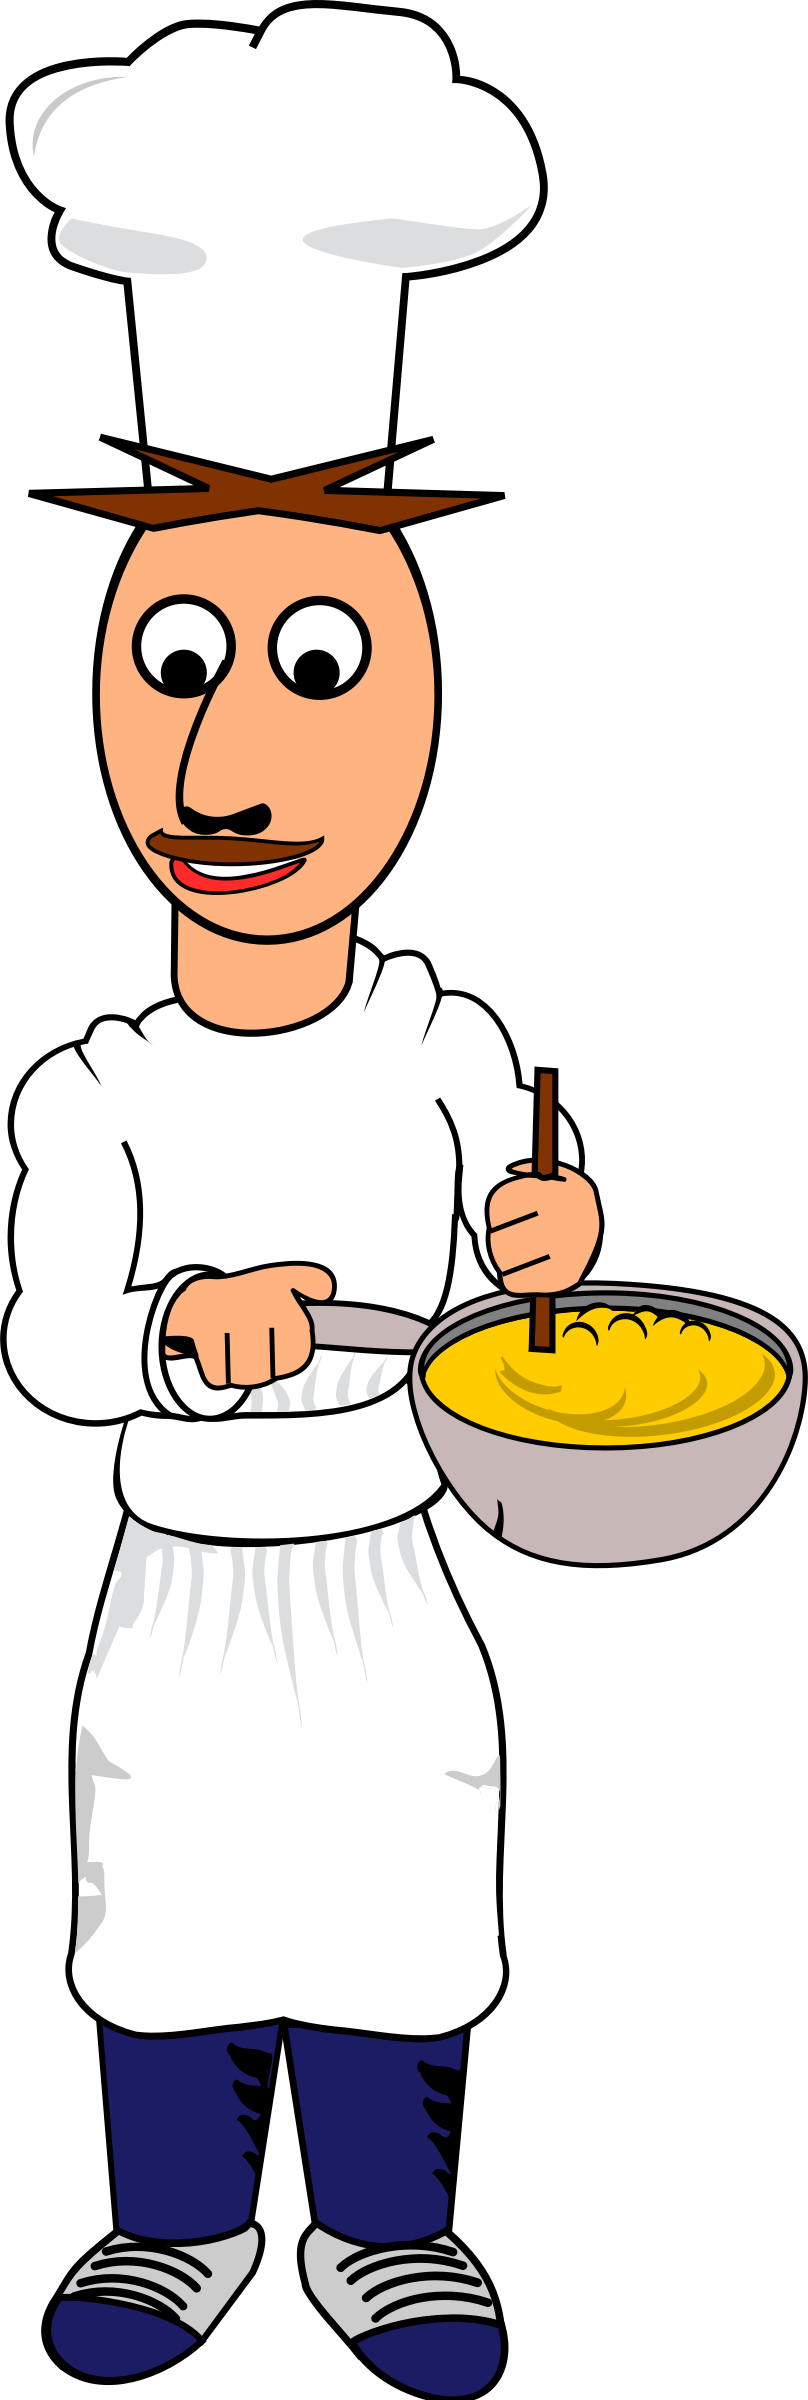 Big image png. Cooking clipart male cook